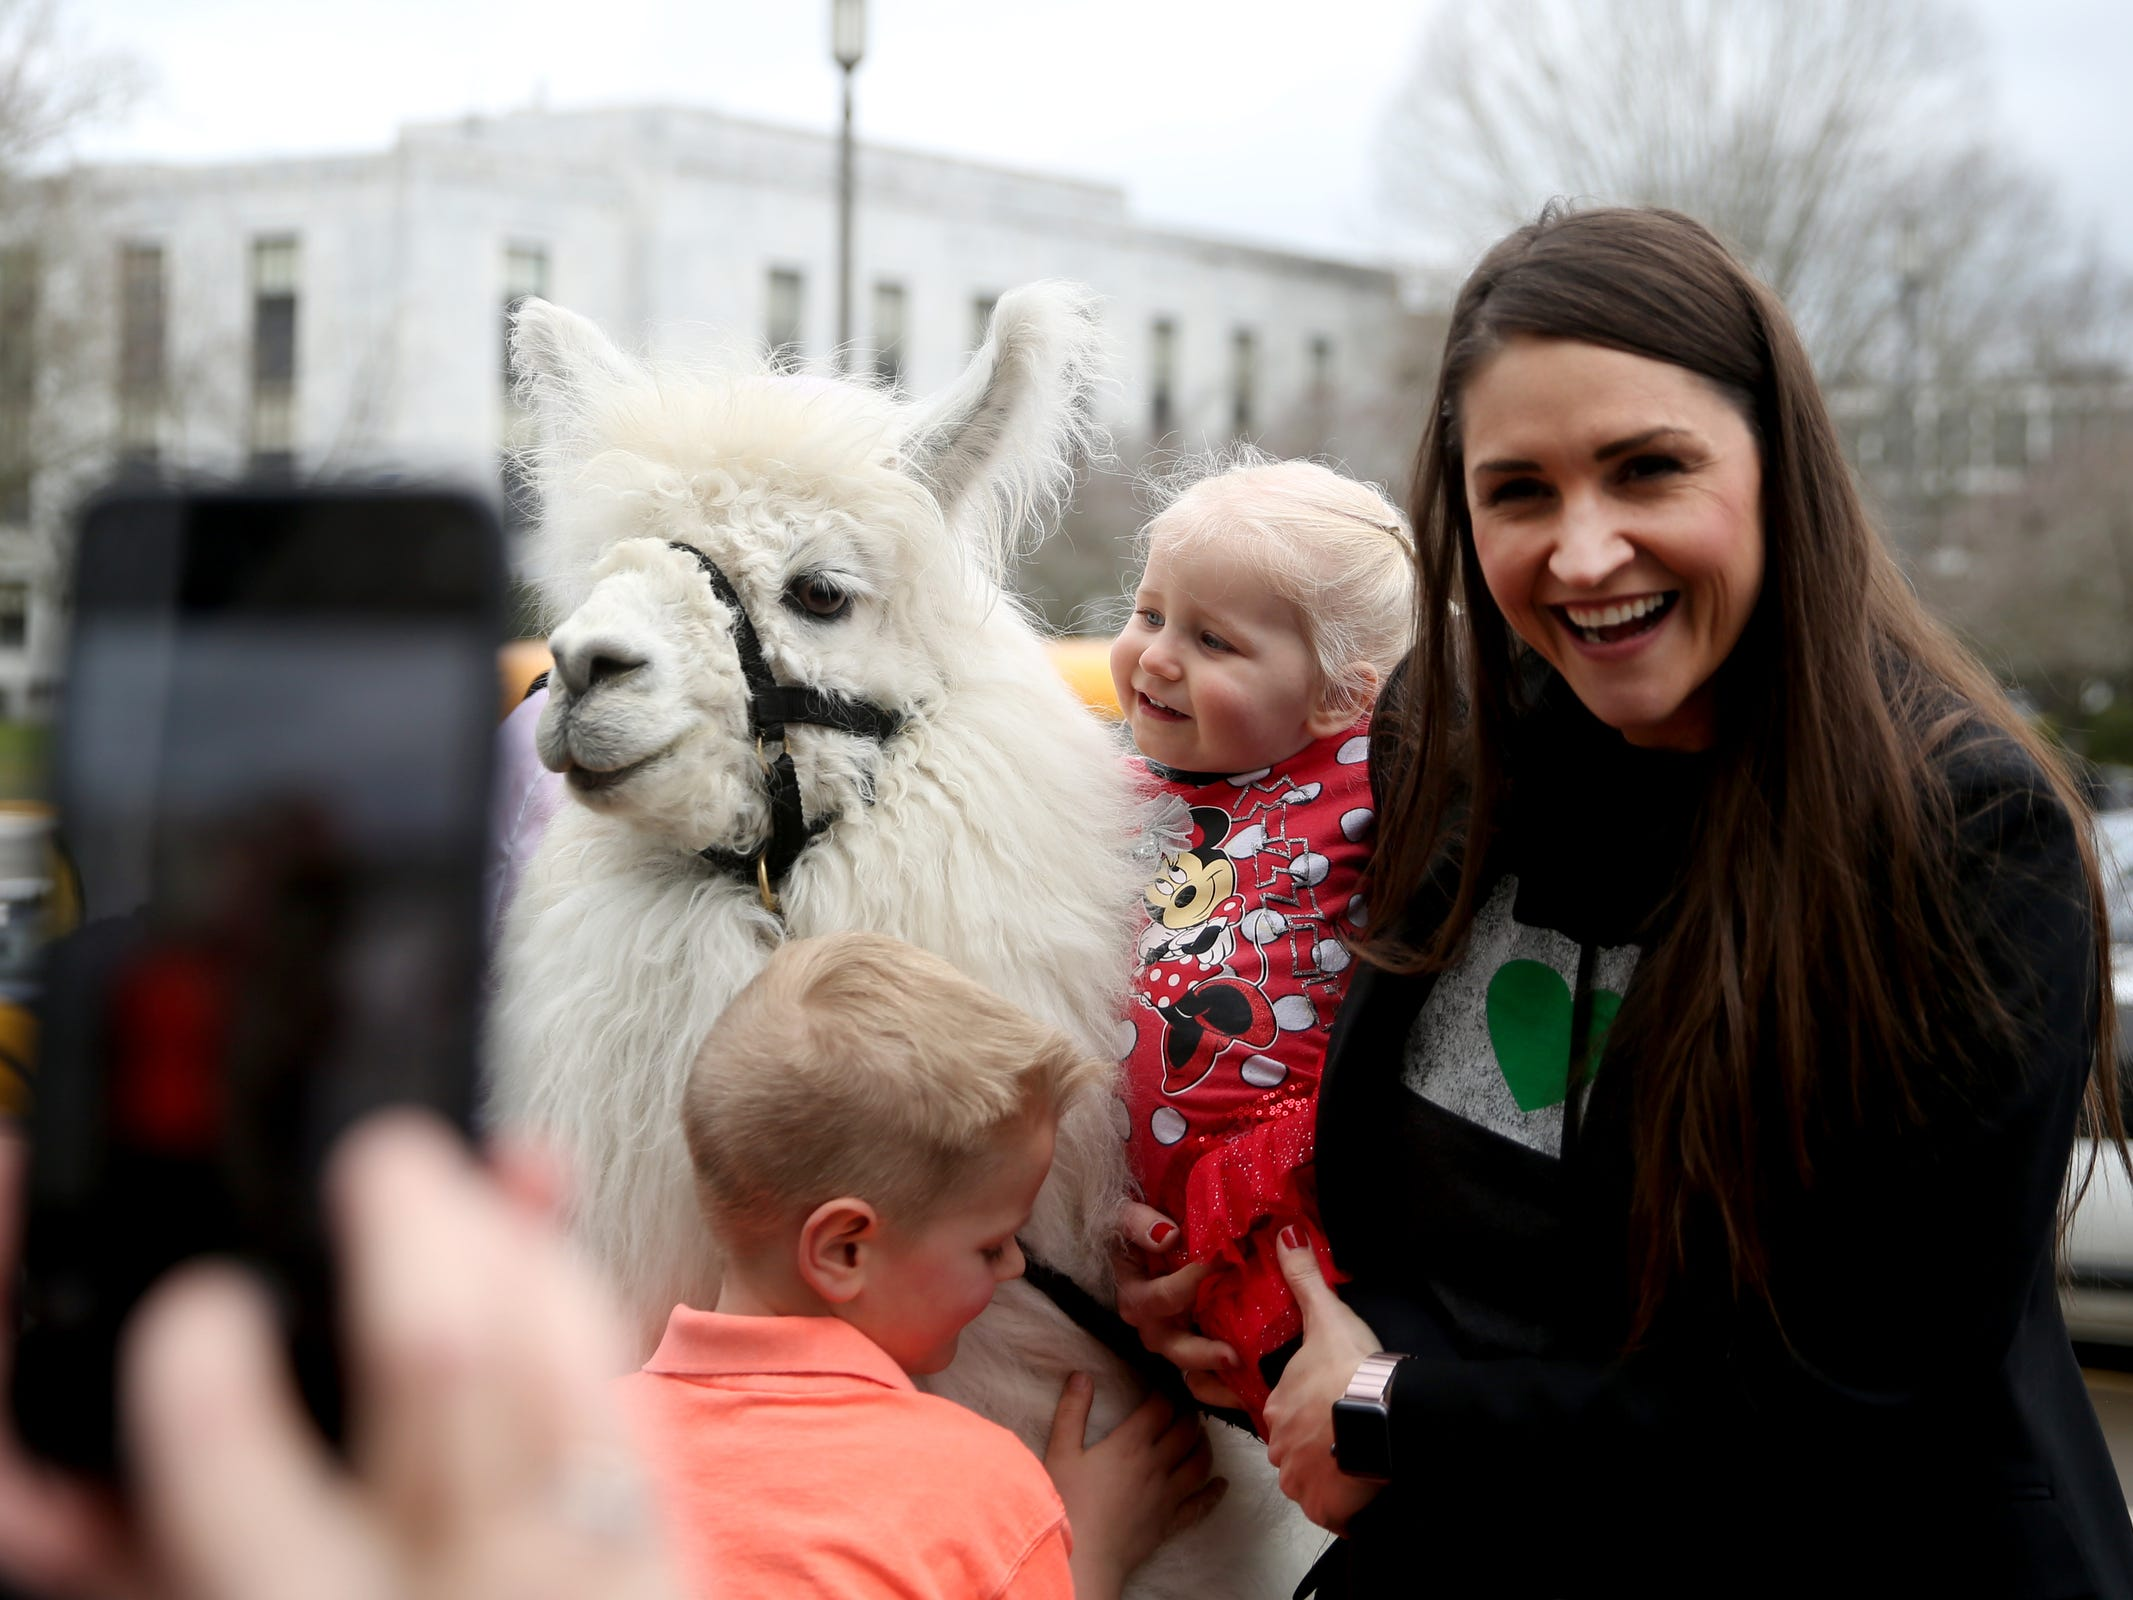 Sen. Shemia Fagan, D-Portland, has a photo taken with her children, Alton, 6, and Imogene Maughan, 2, with Caesar the No Drama Llama during a demonstration for International Women's Day at the Oregon State Capitol in Salem on Friday, March 8, 2019. Many during the rally voiced their support for a state-run family and medical leave insurance program in Oregon.